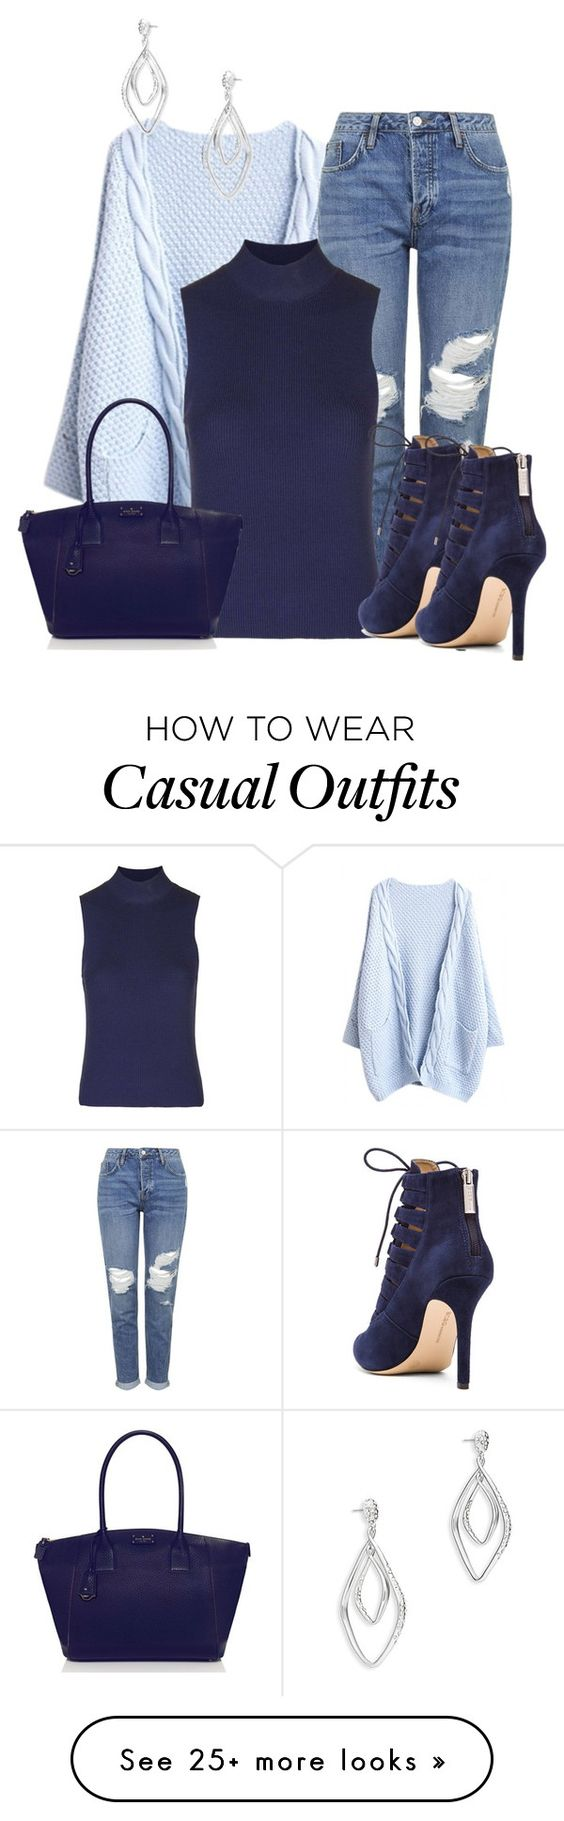 """Untitled #970"" by lchar on Polyvore featuring Topshop, Kate Spade, BCBGeneration and Alexis Bittar:"